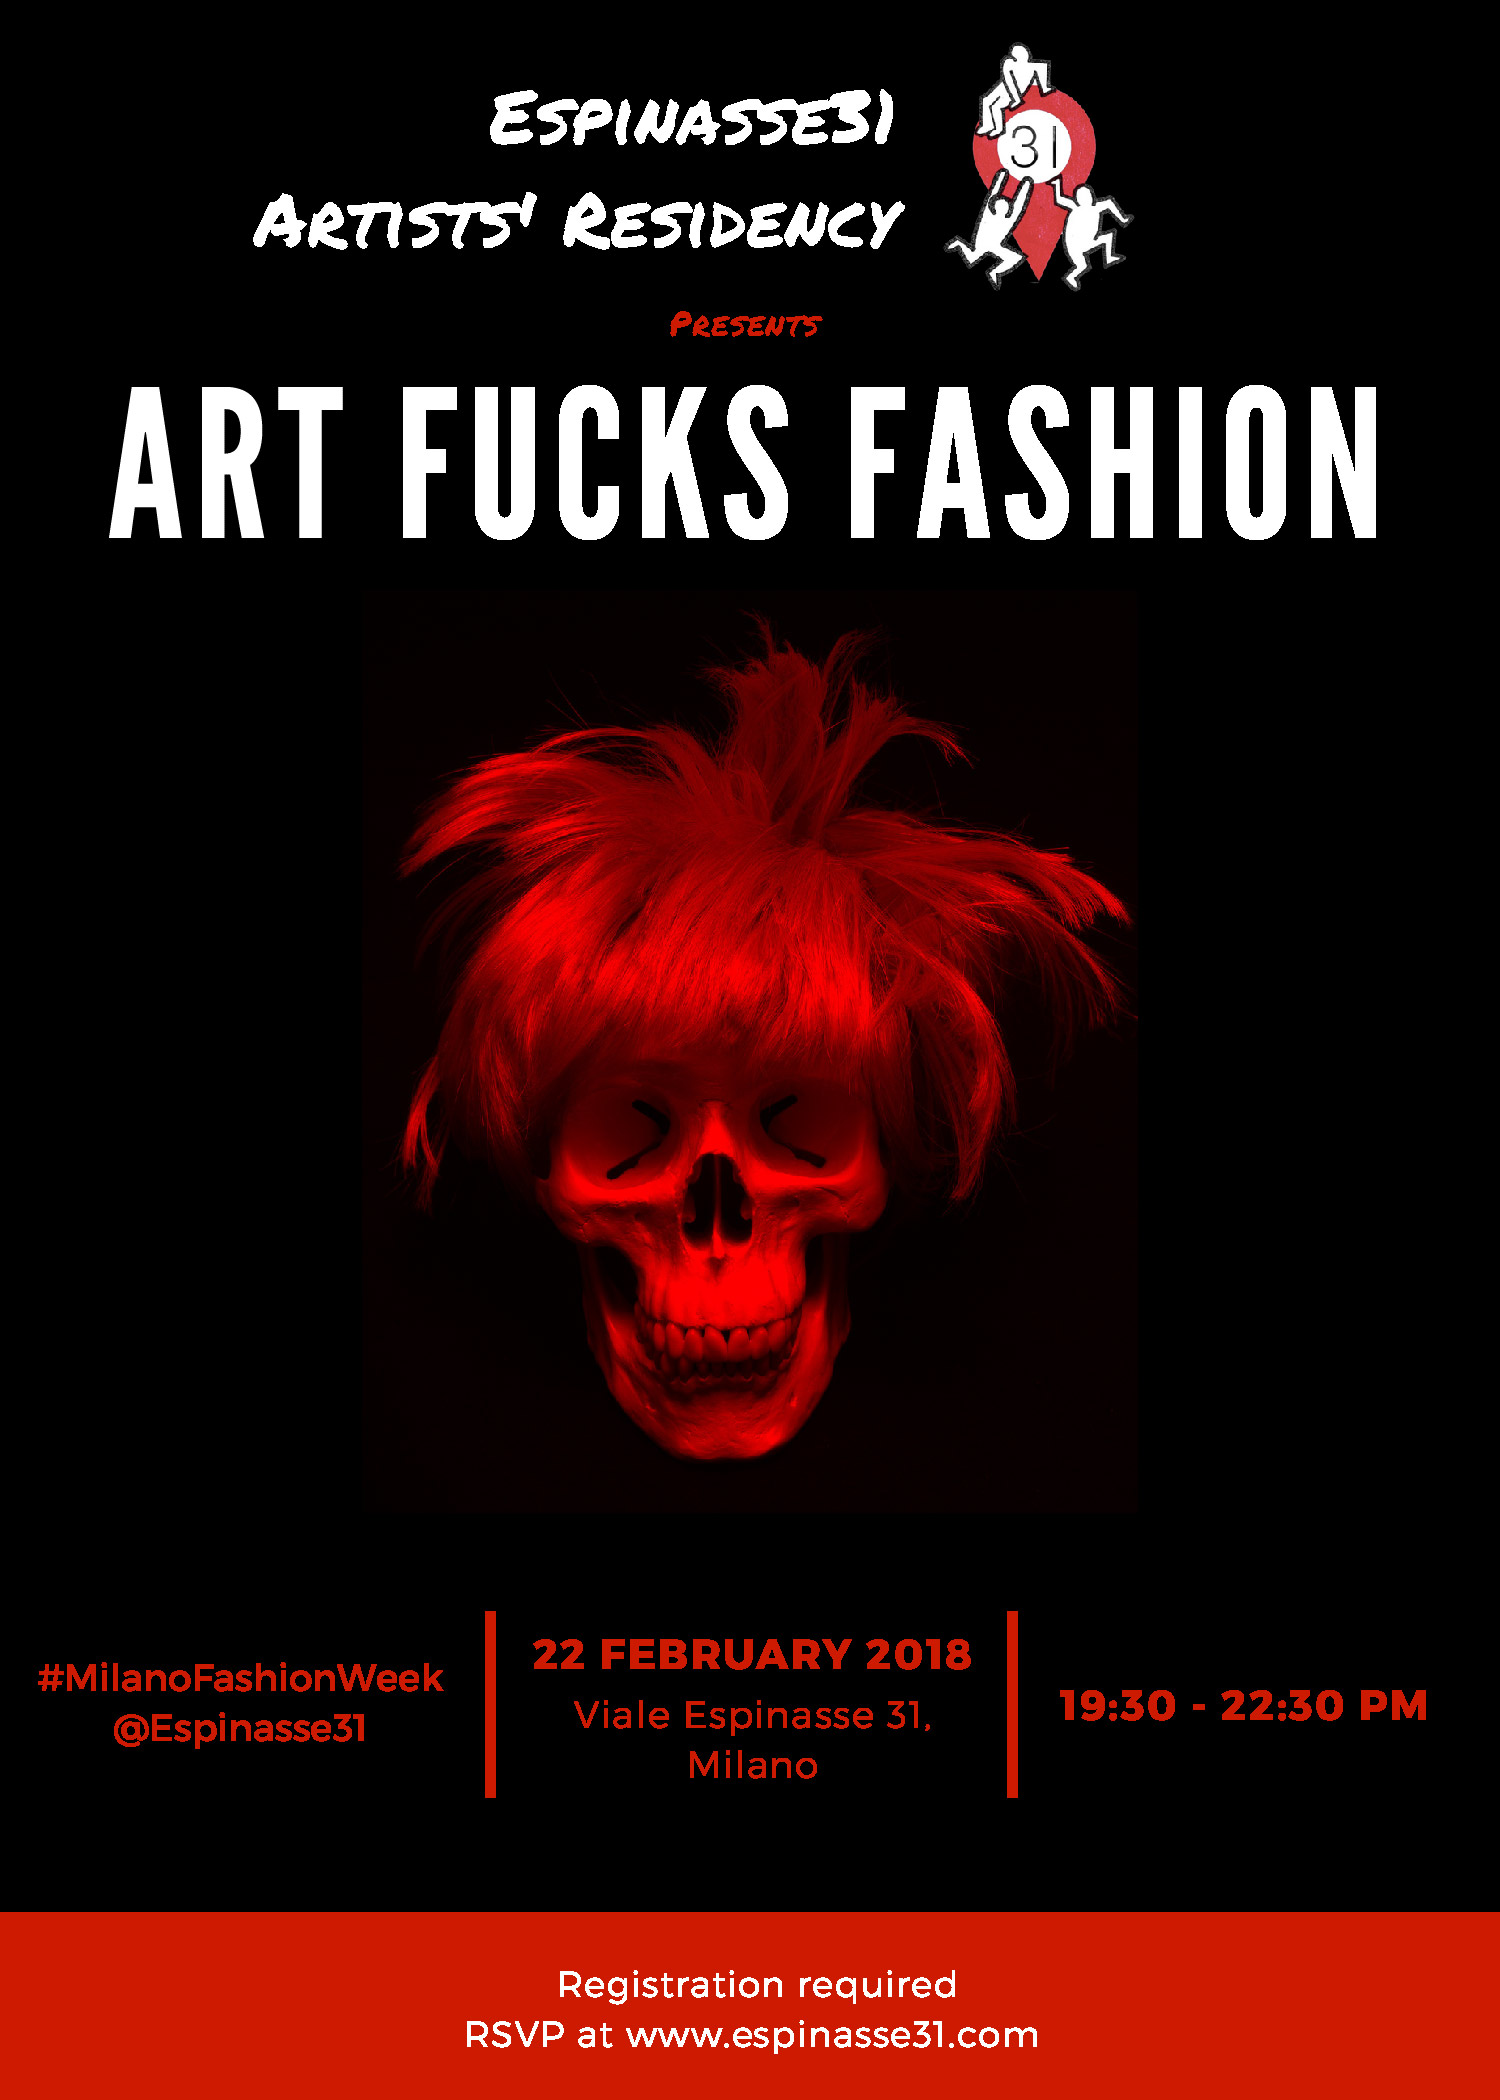 ART FUCKS FASHION